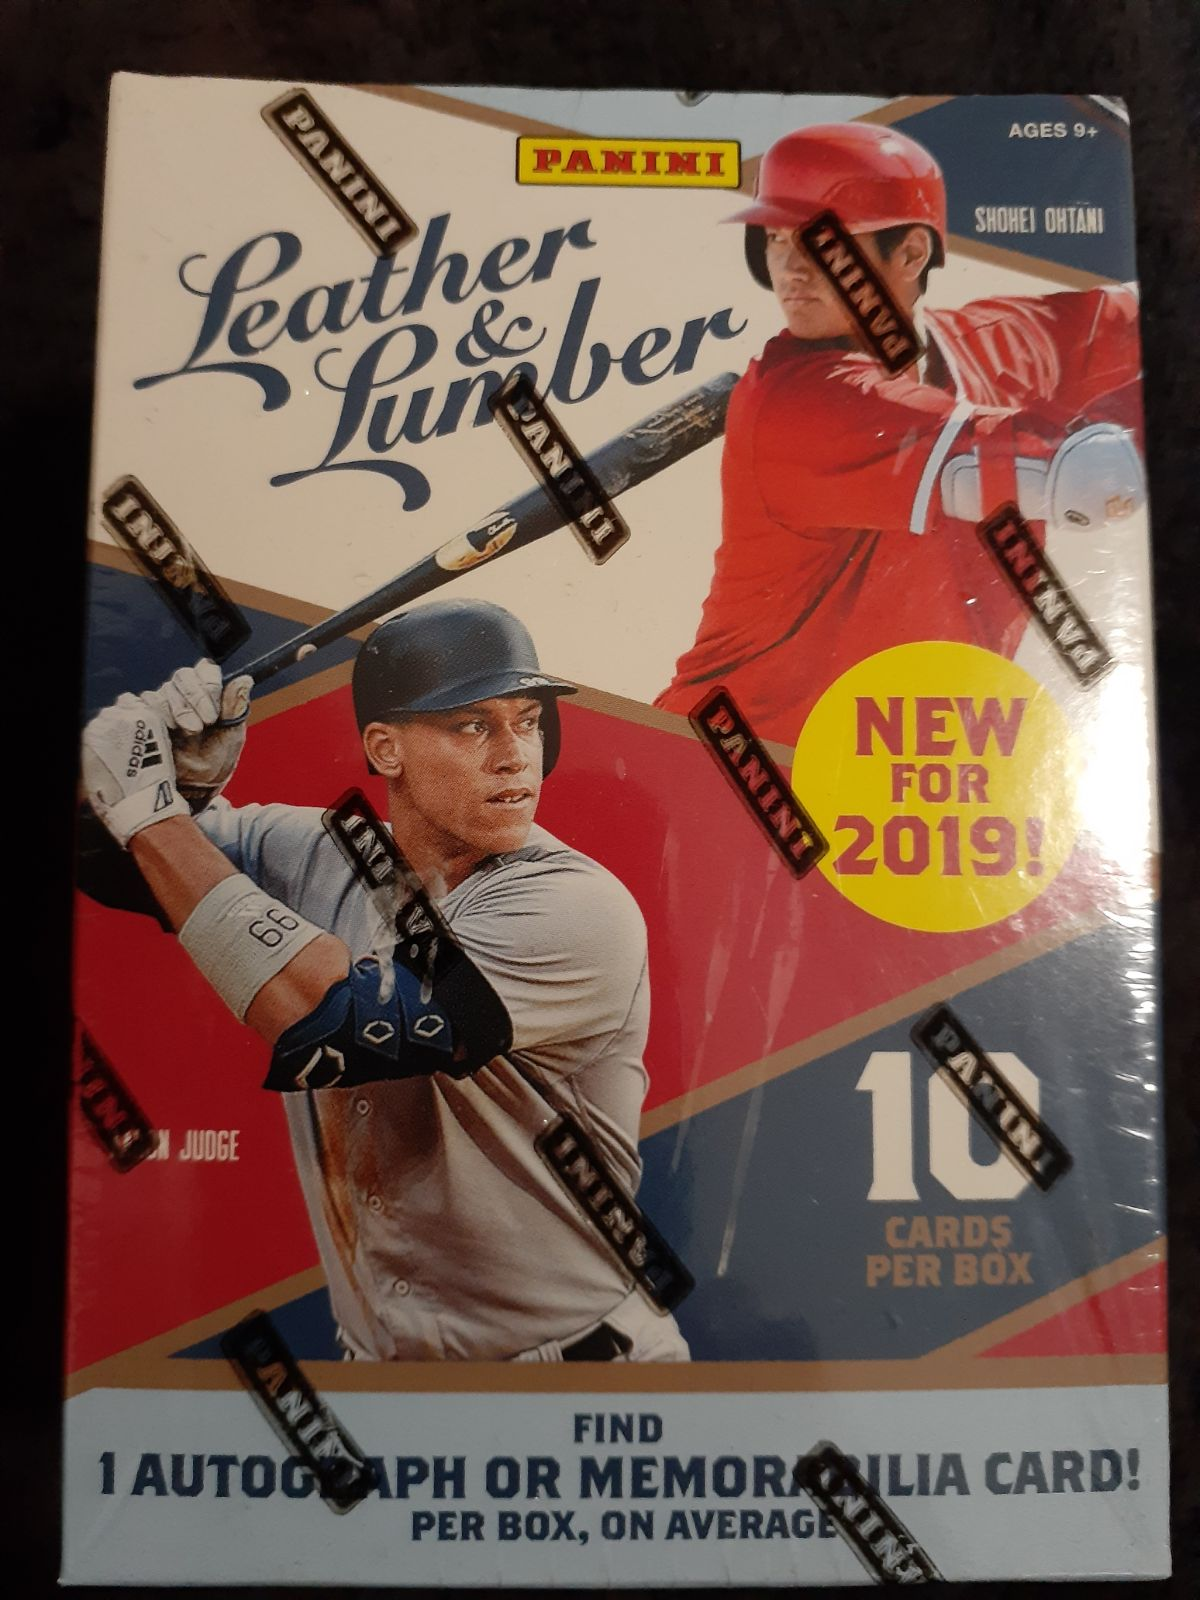 2019 MLB Leather and Lumber Blaster Box